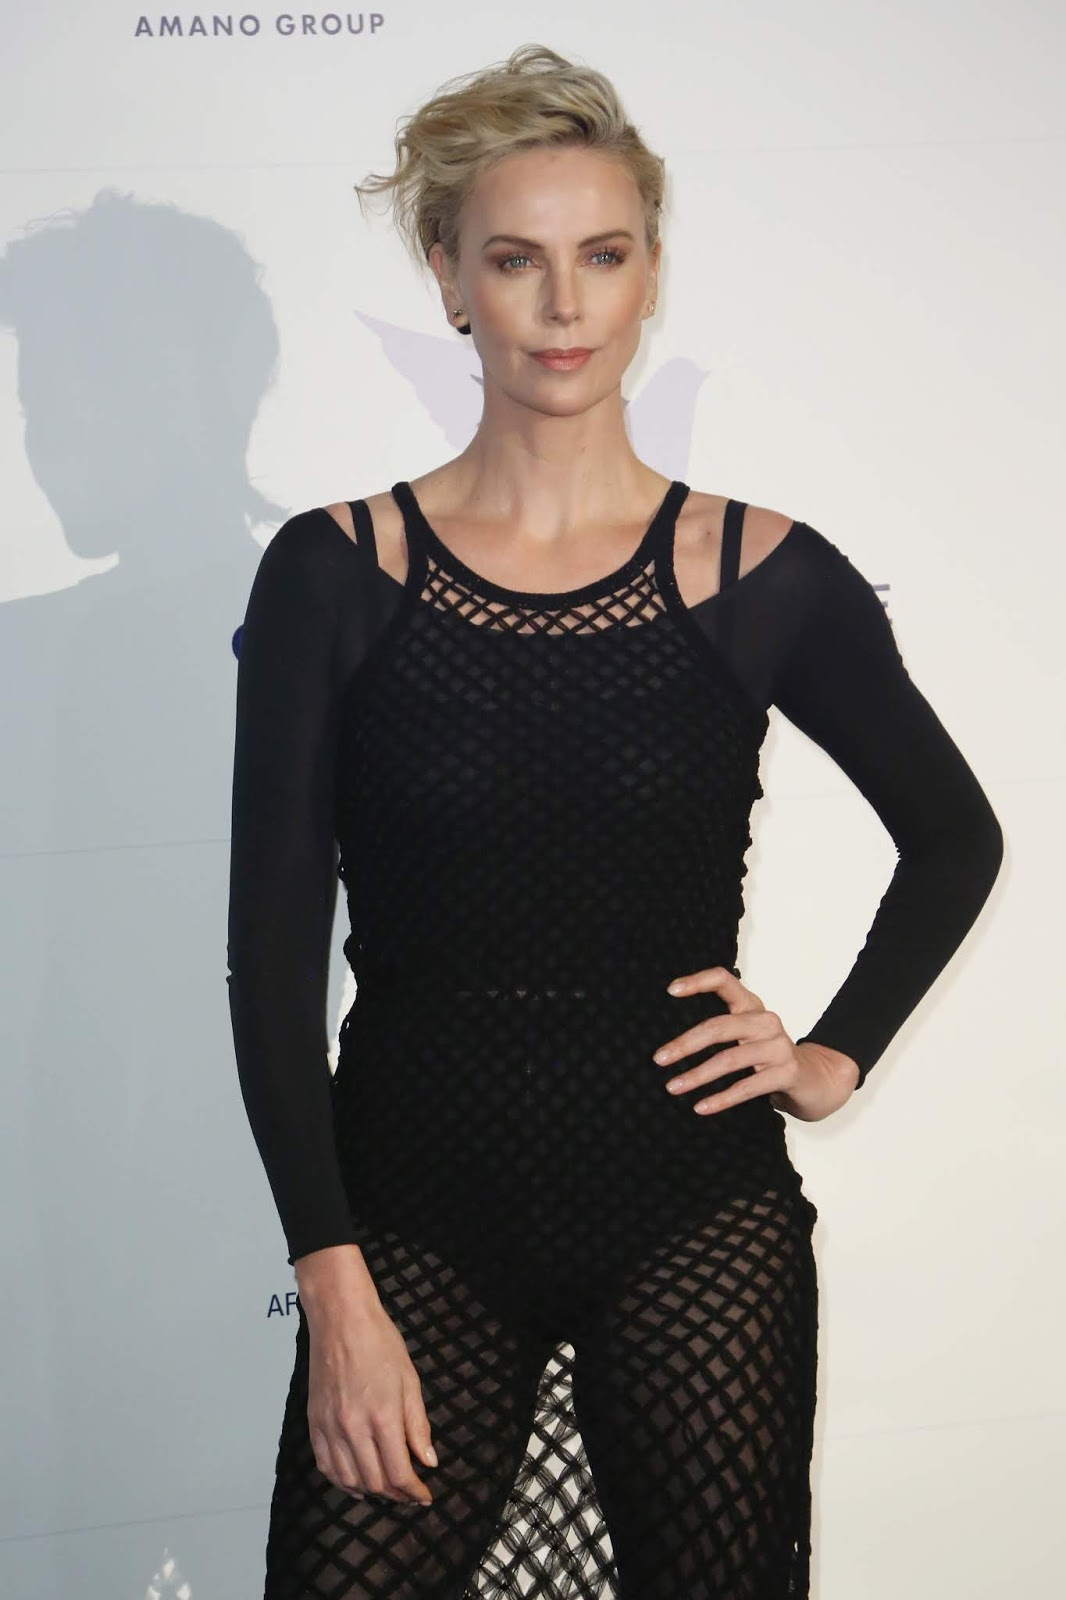 Charlize Theron - Cinema For Peace International Committee & Nominee Dinner in Berlin, Germany February 10, 2019